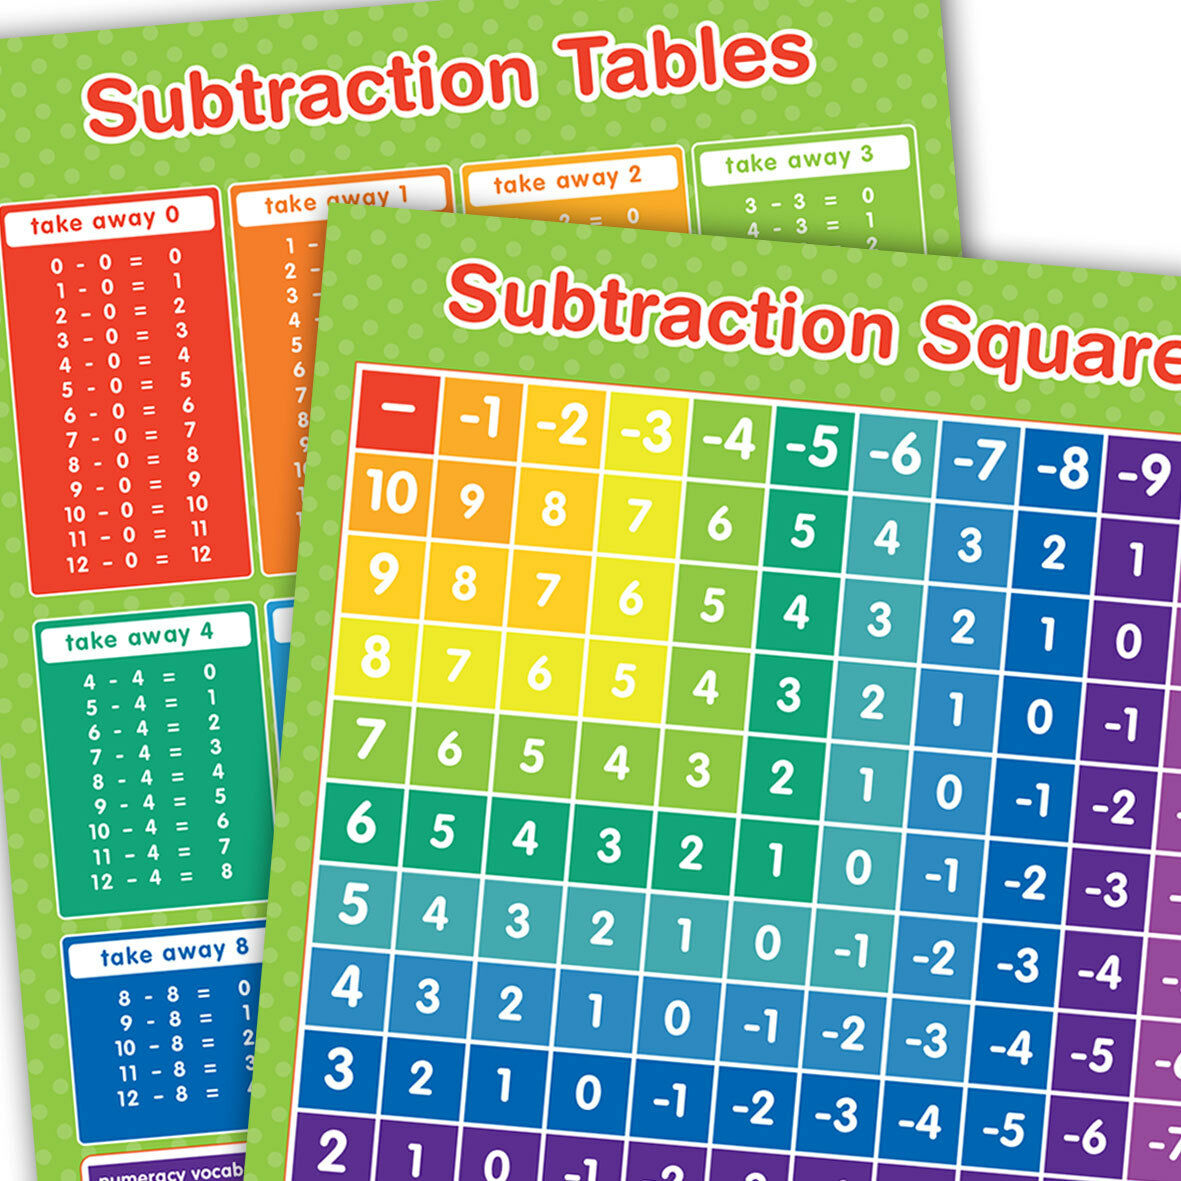 A3 SUBTRACTION TABLES & Square Posters Maths Ed Learning Teaching ...